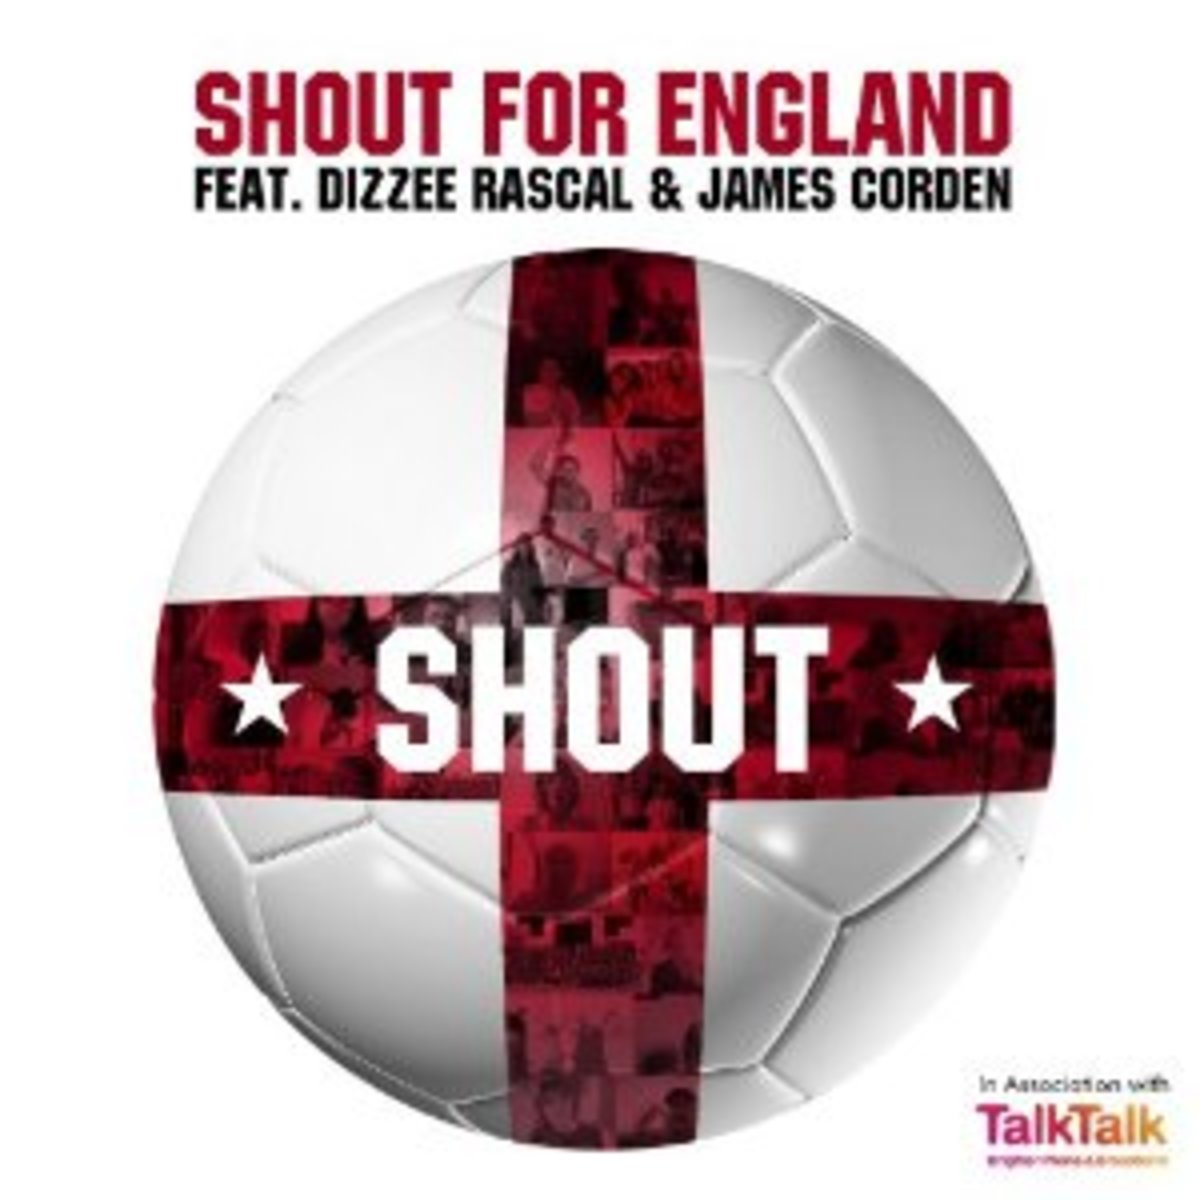 """""""Shout For England"""" is an unofficial World Cup anthem in support of England's soccer team that features rapper Dizzee Rascal and actor/comedian James Corden."""